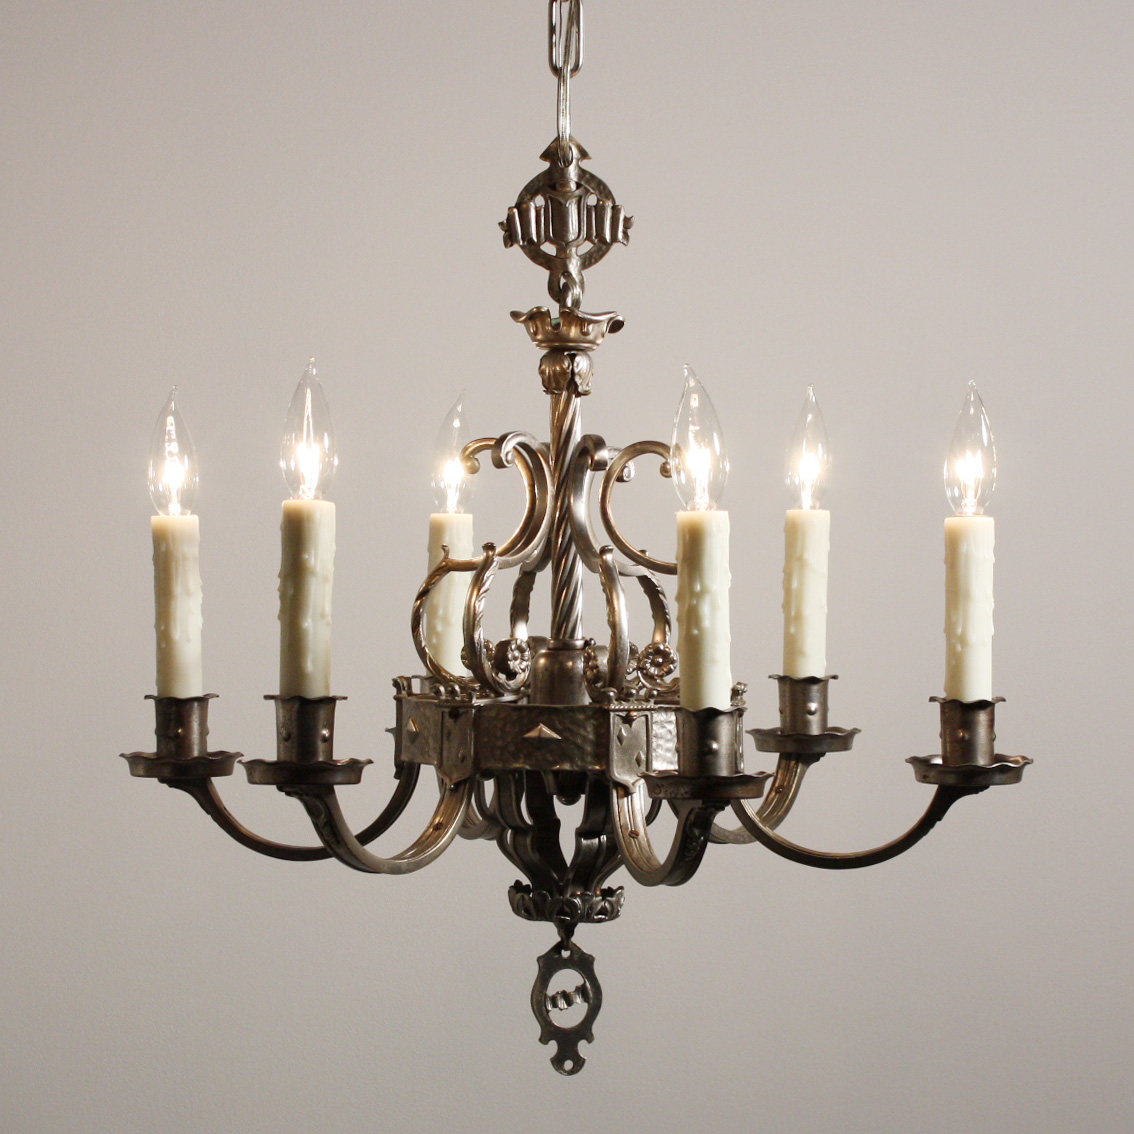 Incredible Antique Spanish Revival Six Arm Chandelier with Shields,  Darkened Nickel, NC1524 - For - Antique Spanish Chandelier Antique Furniture